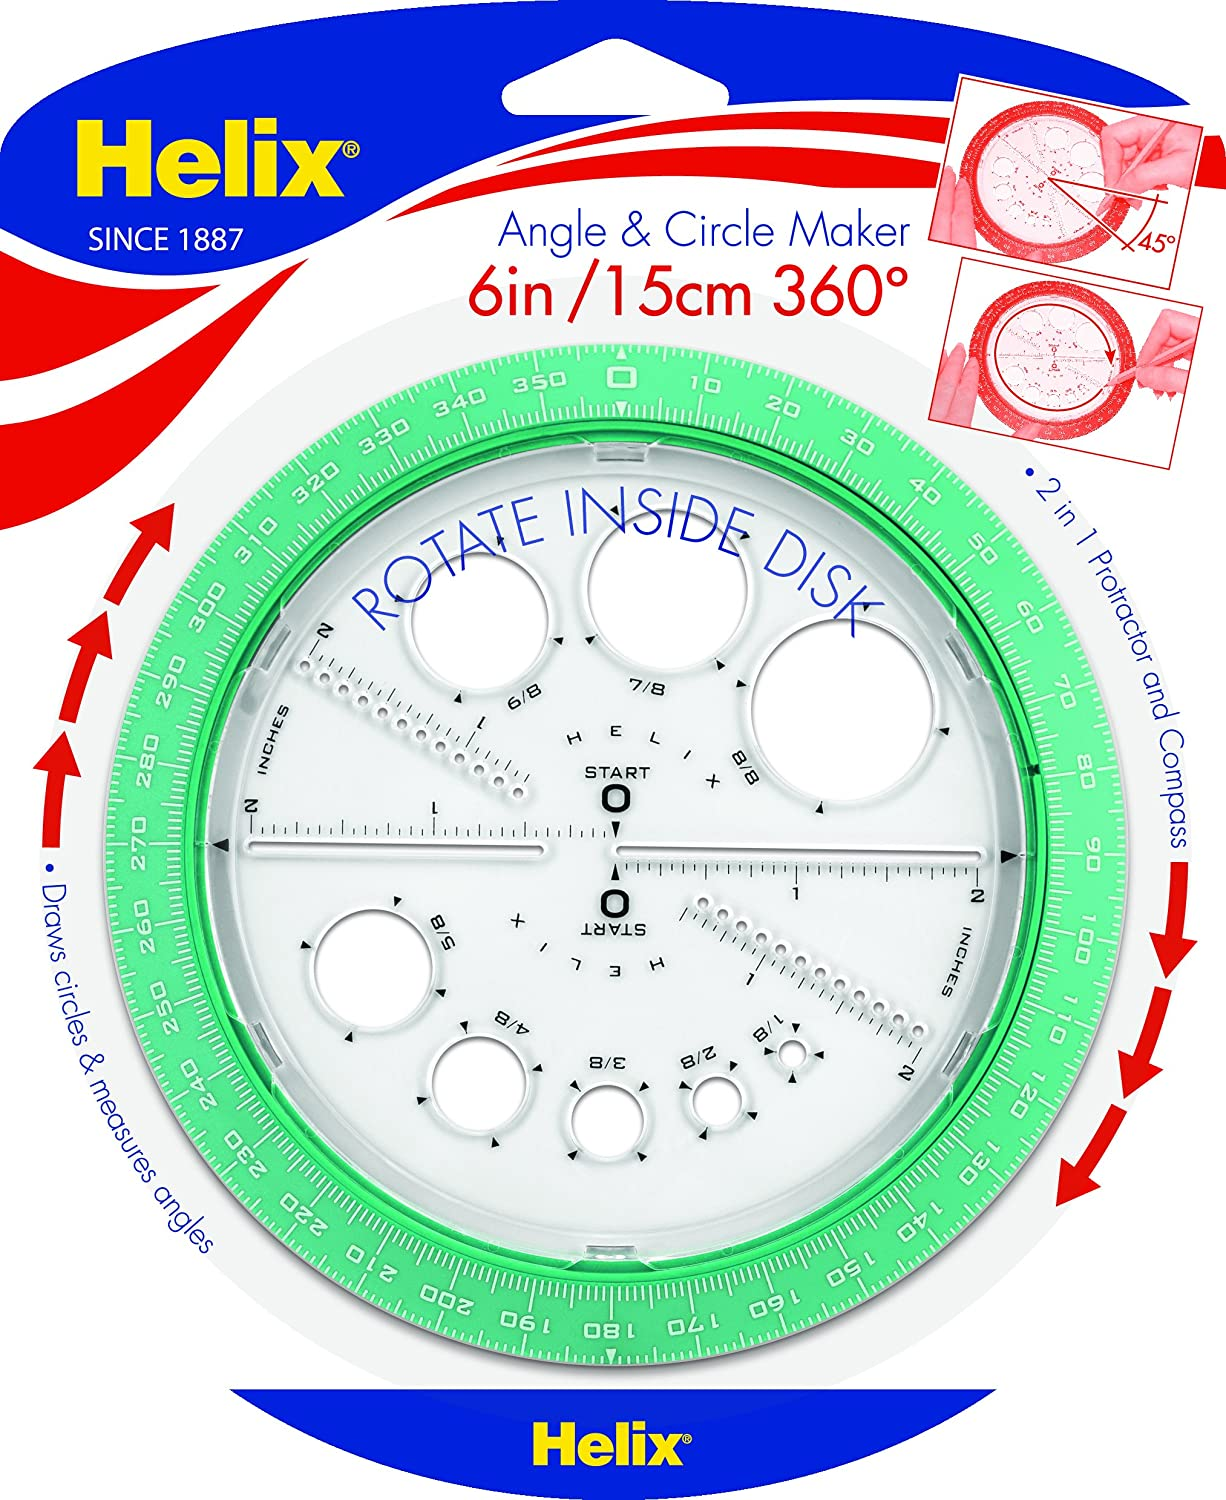 Amazon.com: Helix 360° Angle and Circle Maker, Assorted Colors ...